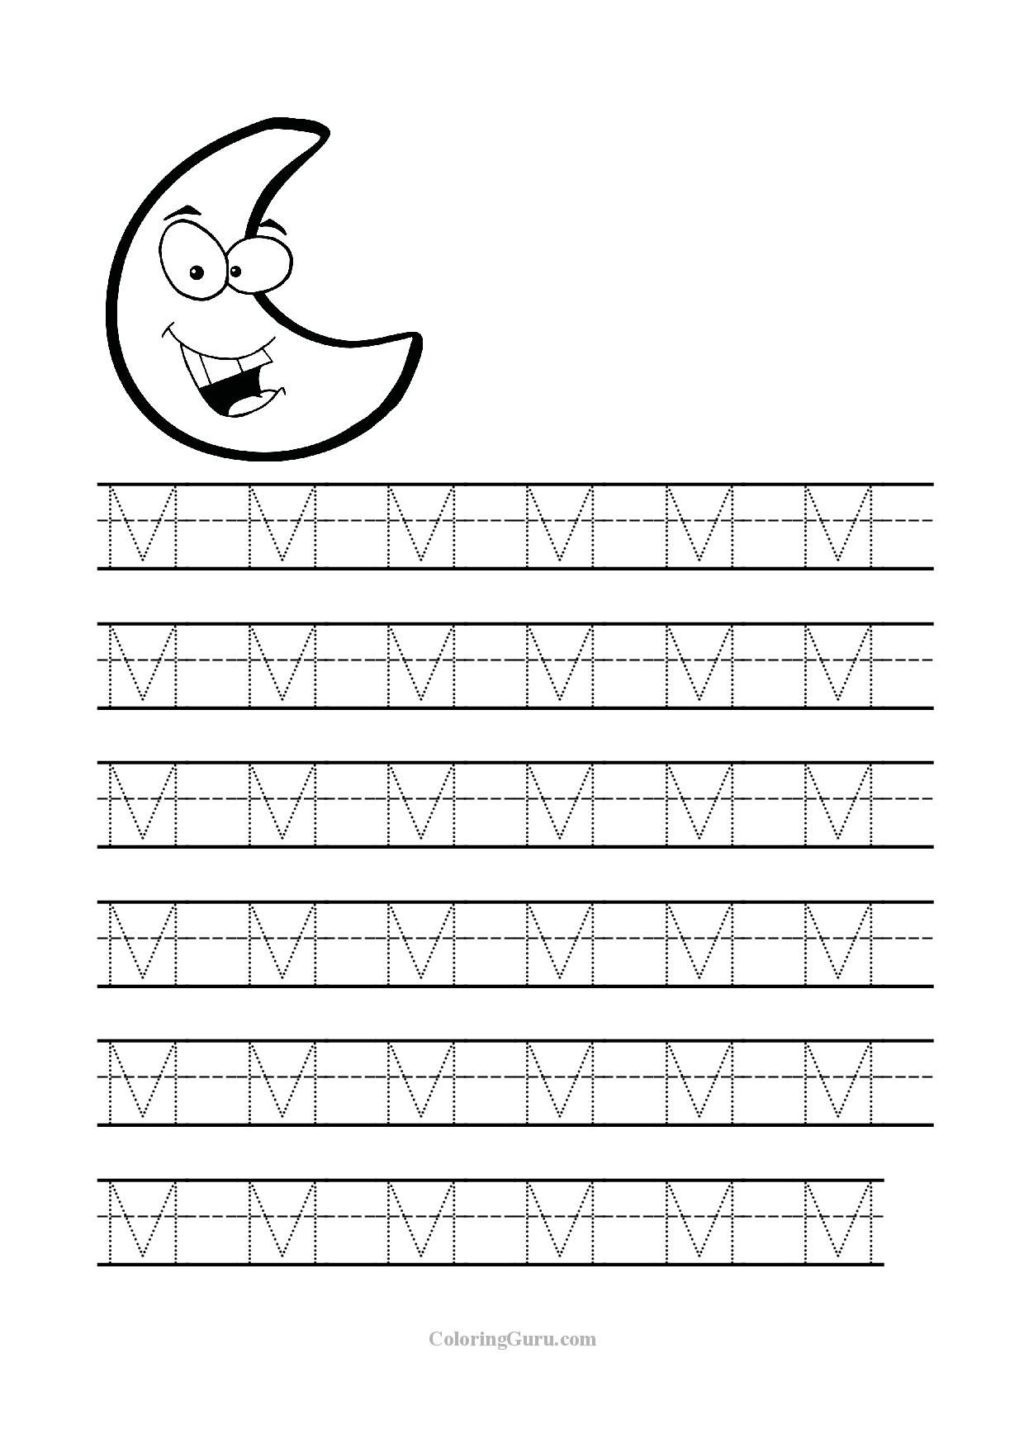 Seasons Worksheets for Preschoolers Worksheet Free Printable Practice Printing Worksheets